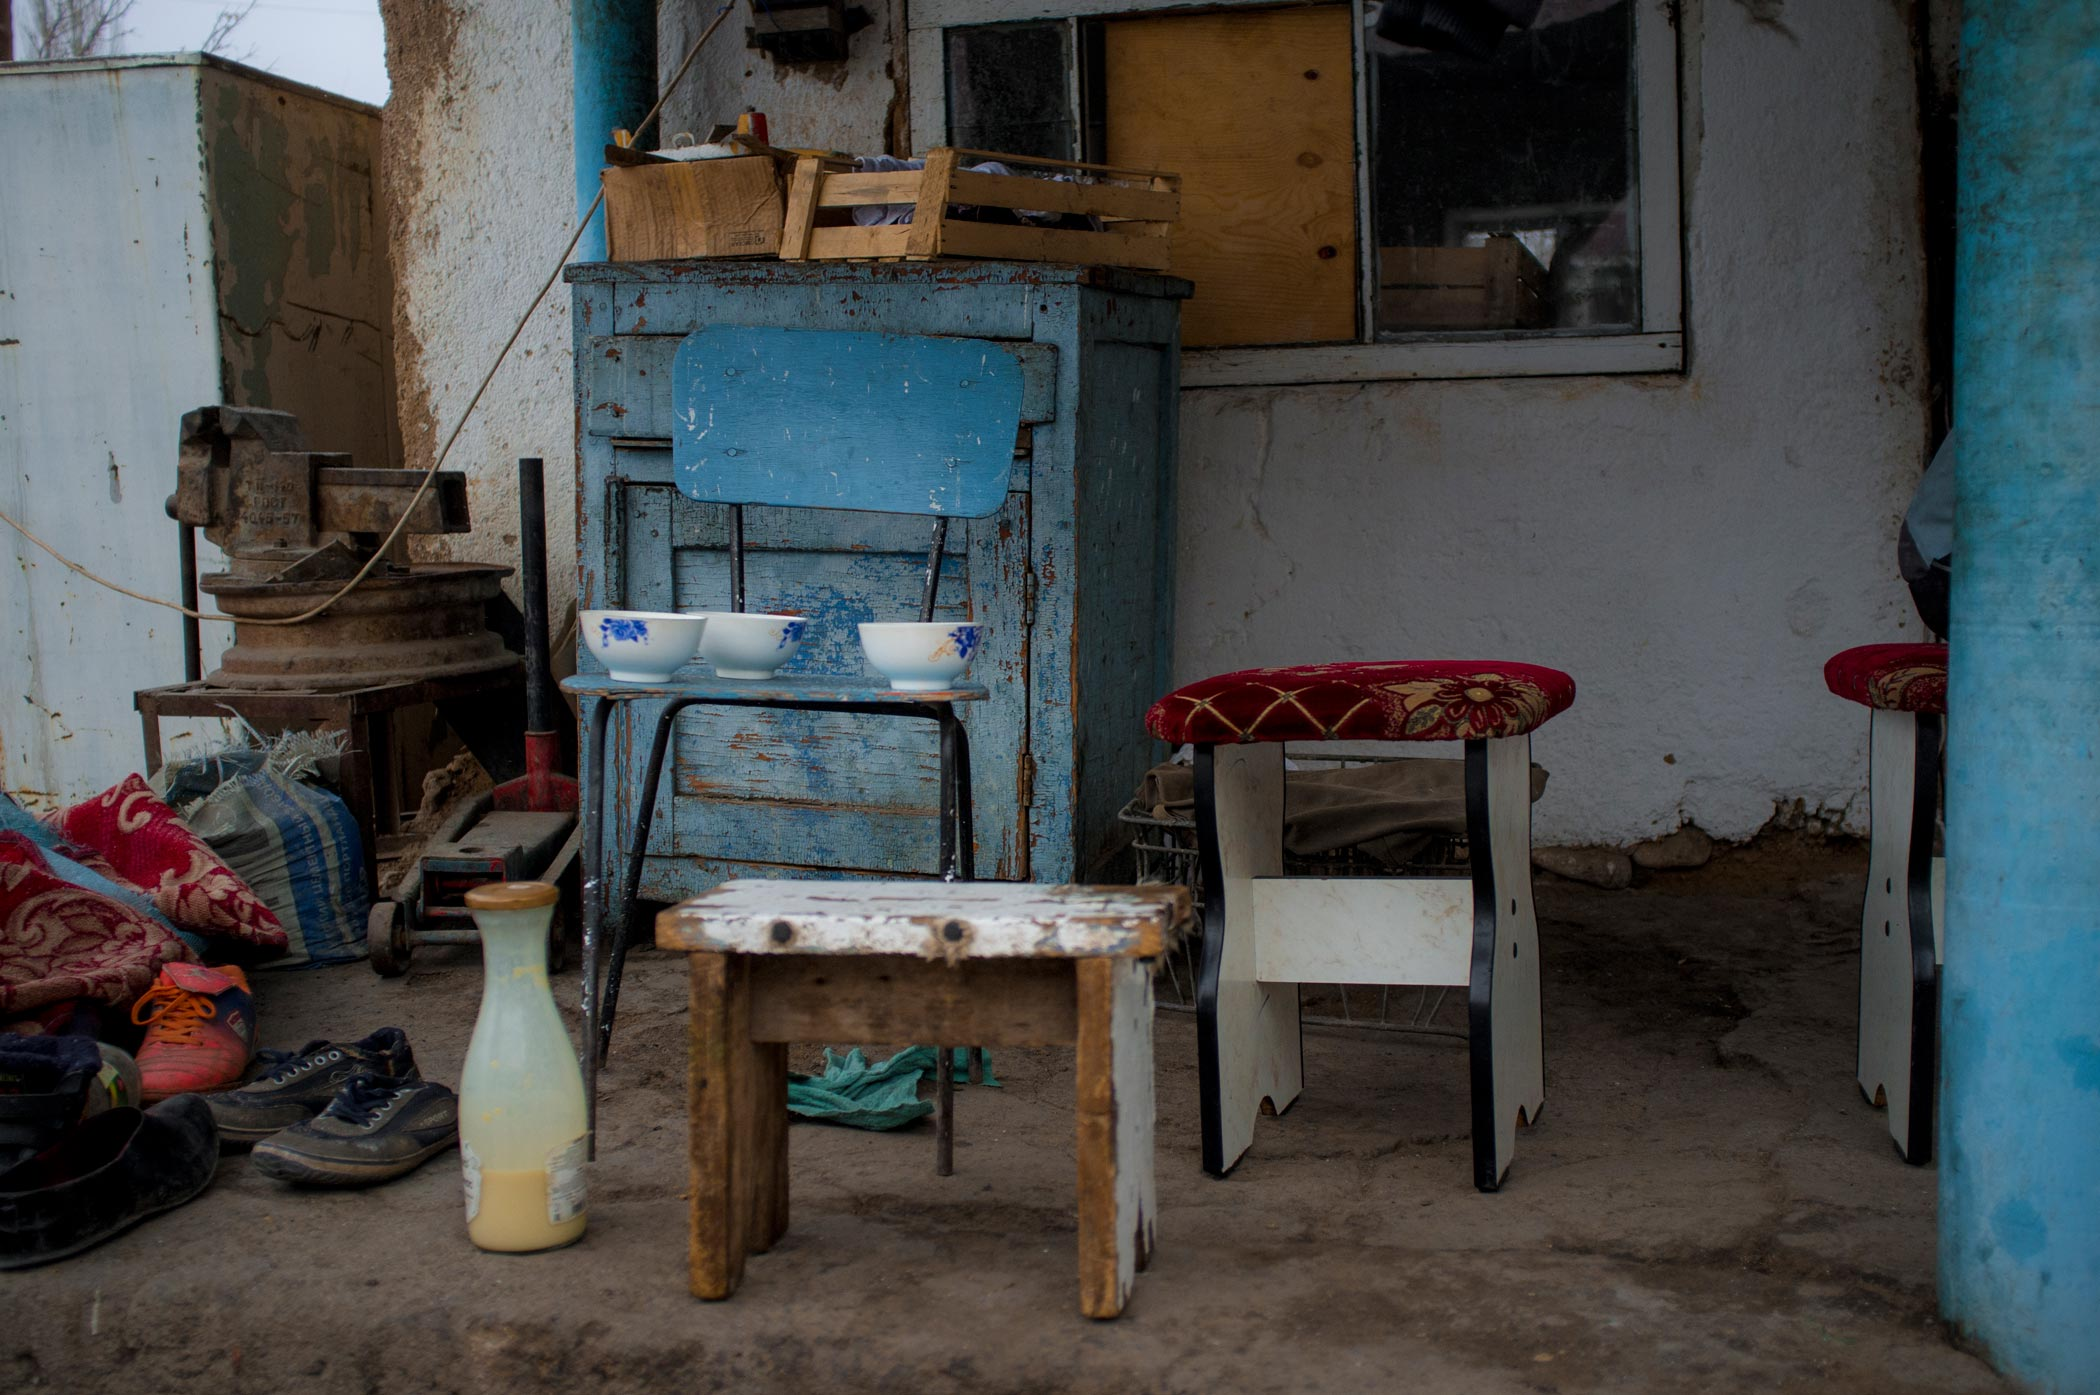 Wooden stools, bowls and a bottle of bozo outside a house in Min Kush Kyrgyzstan